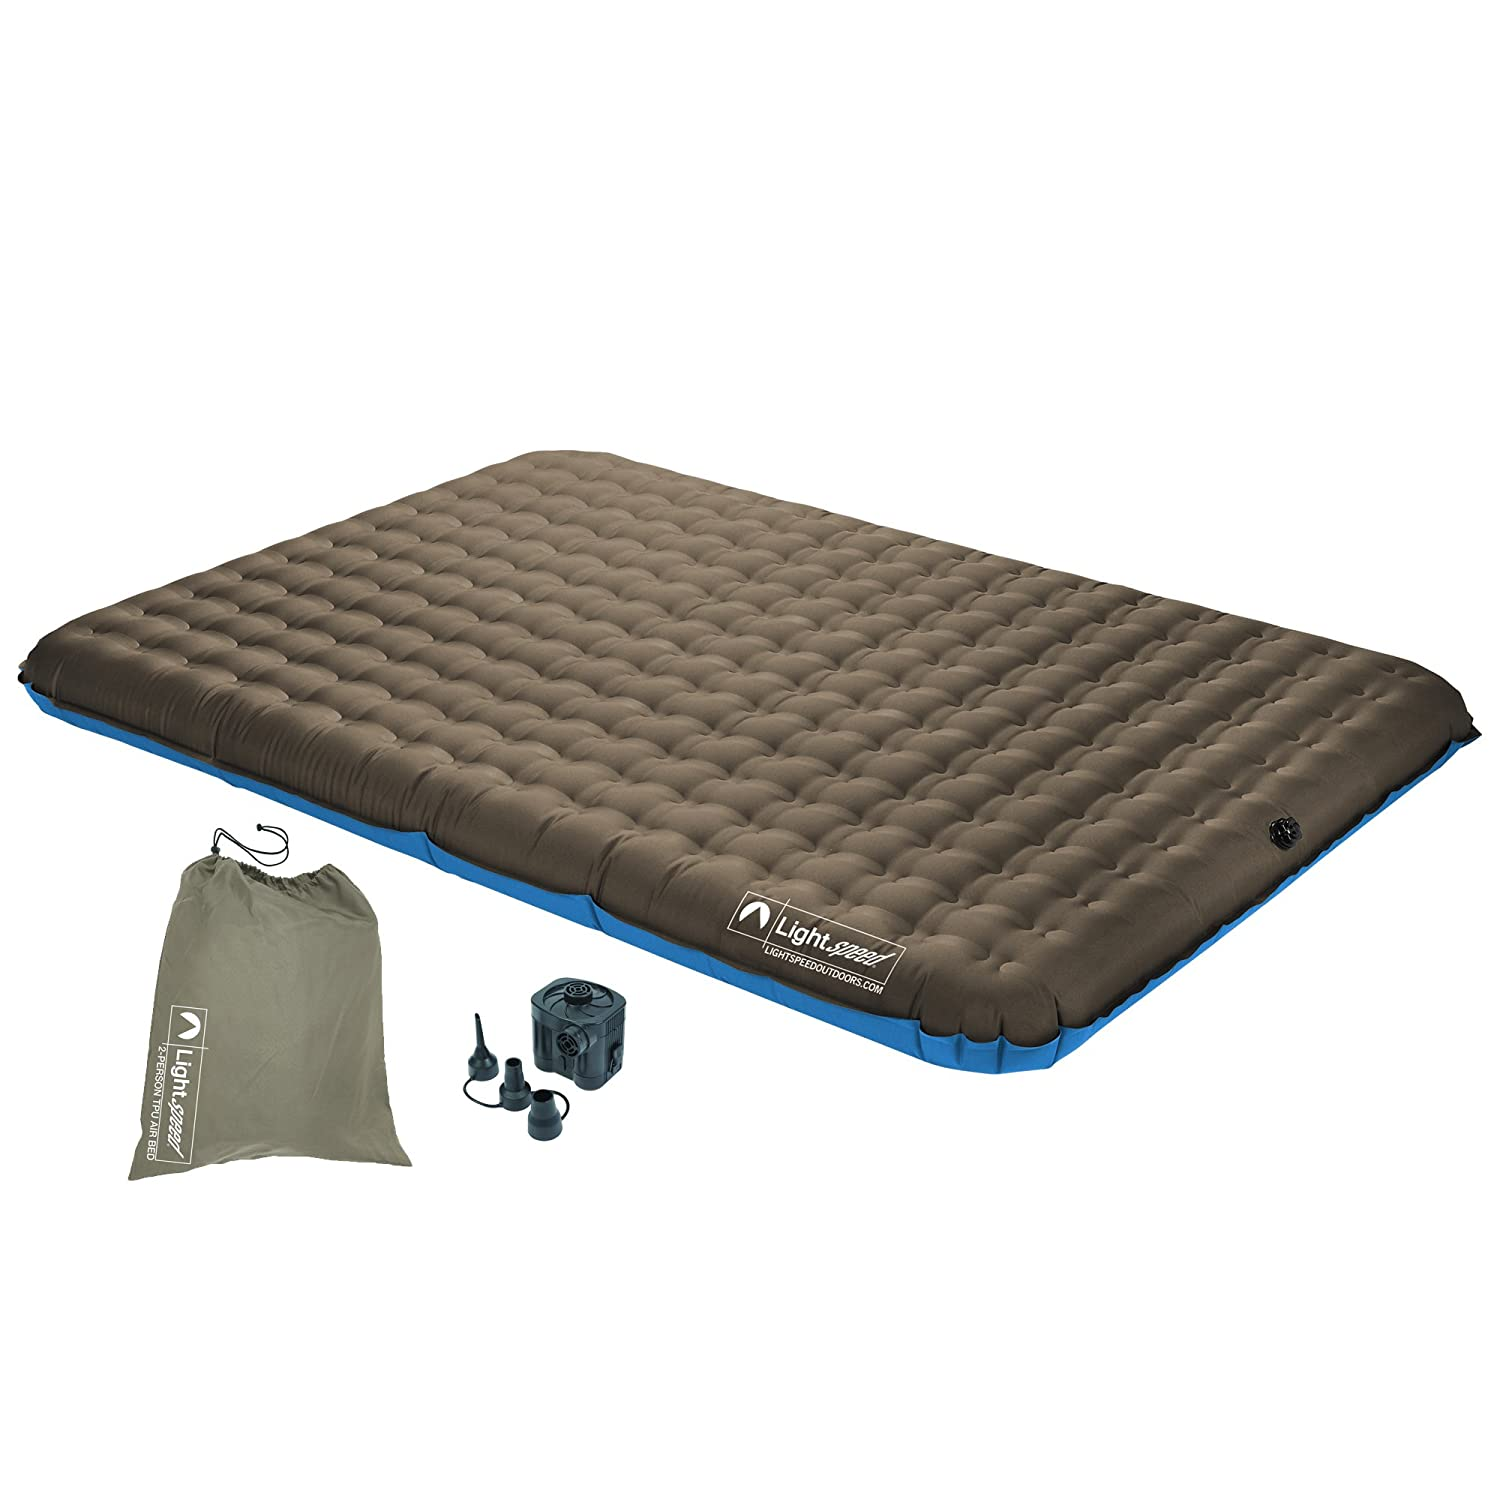 Amazon.com : Lightspeed Outdoors 2-Person PVC-Free Air Bed w ...